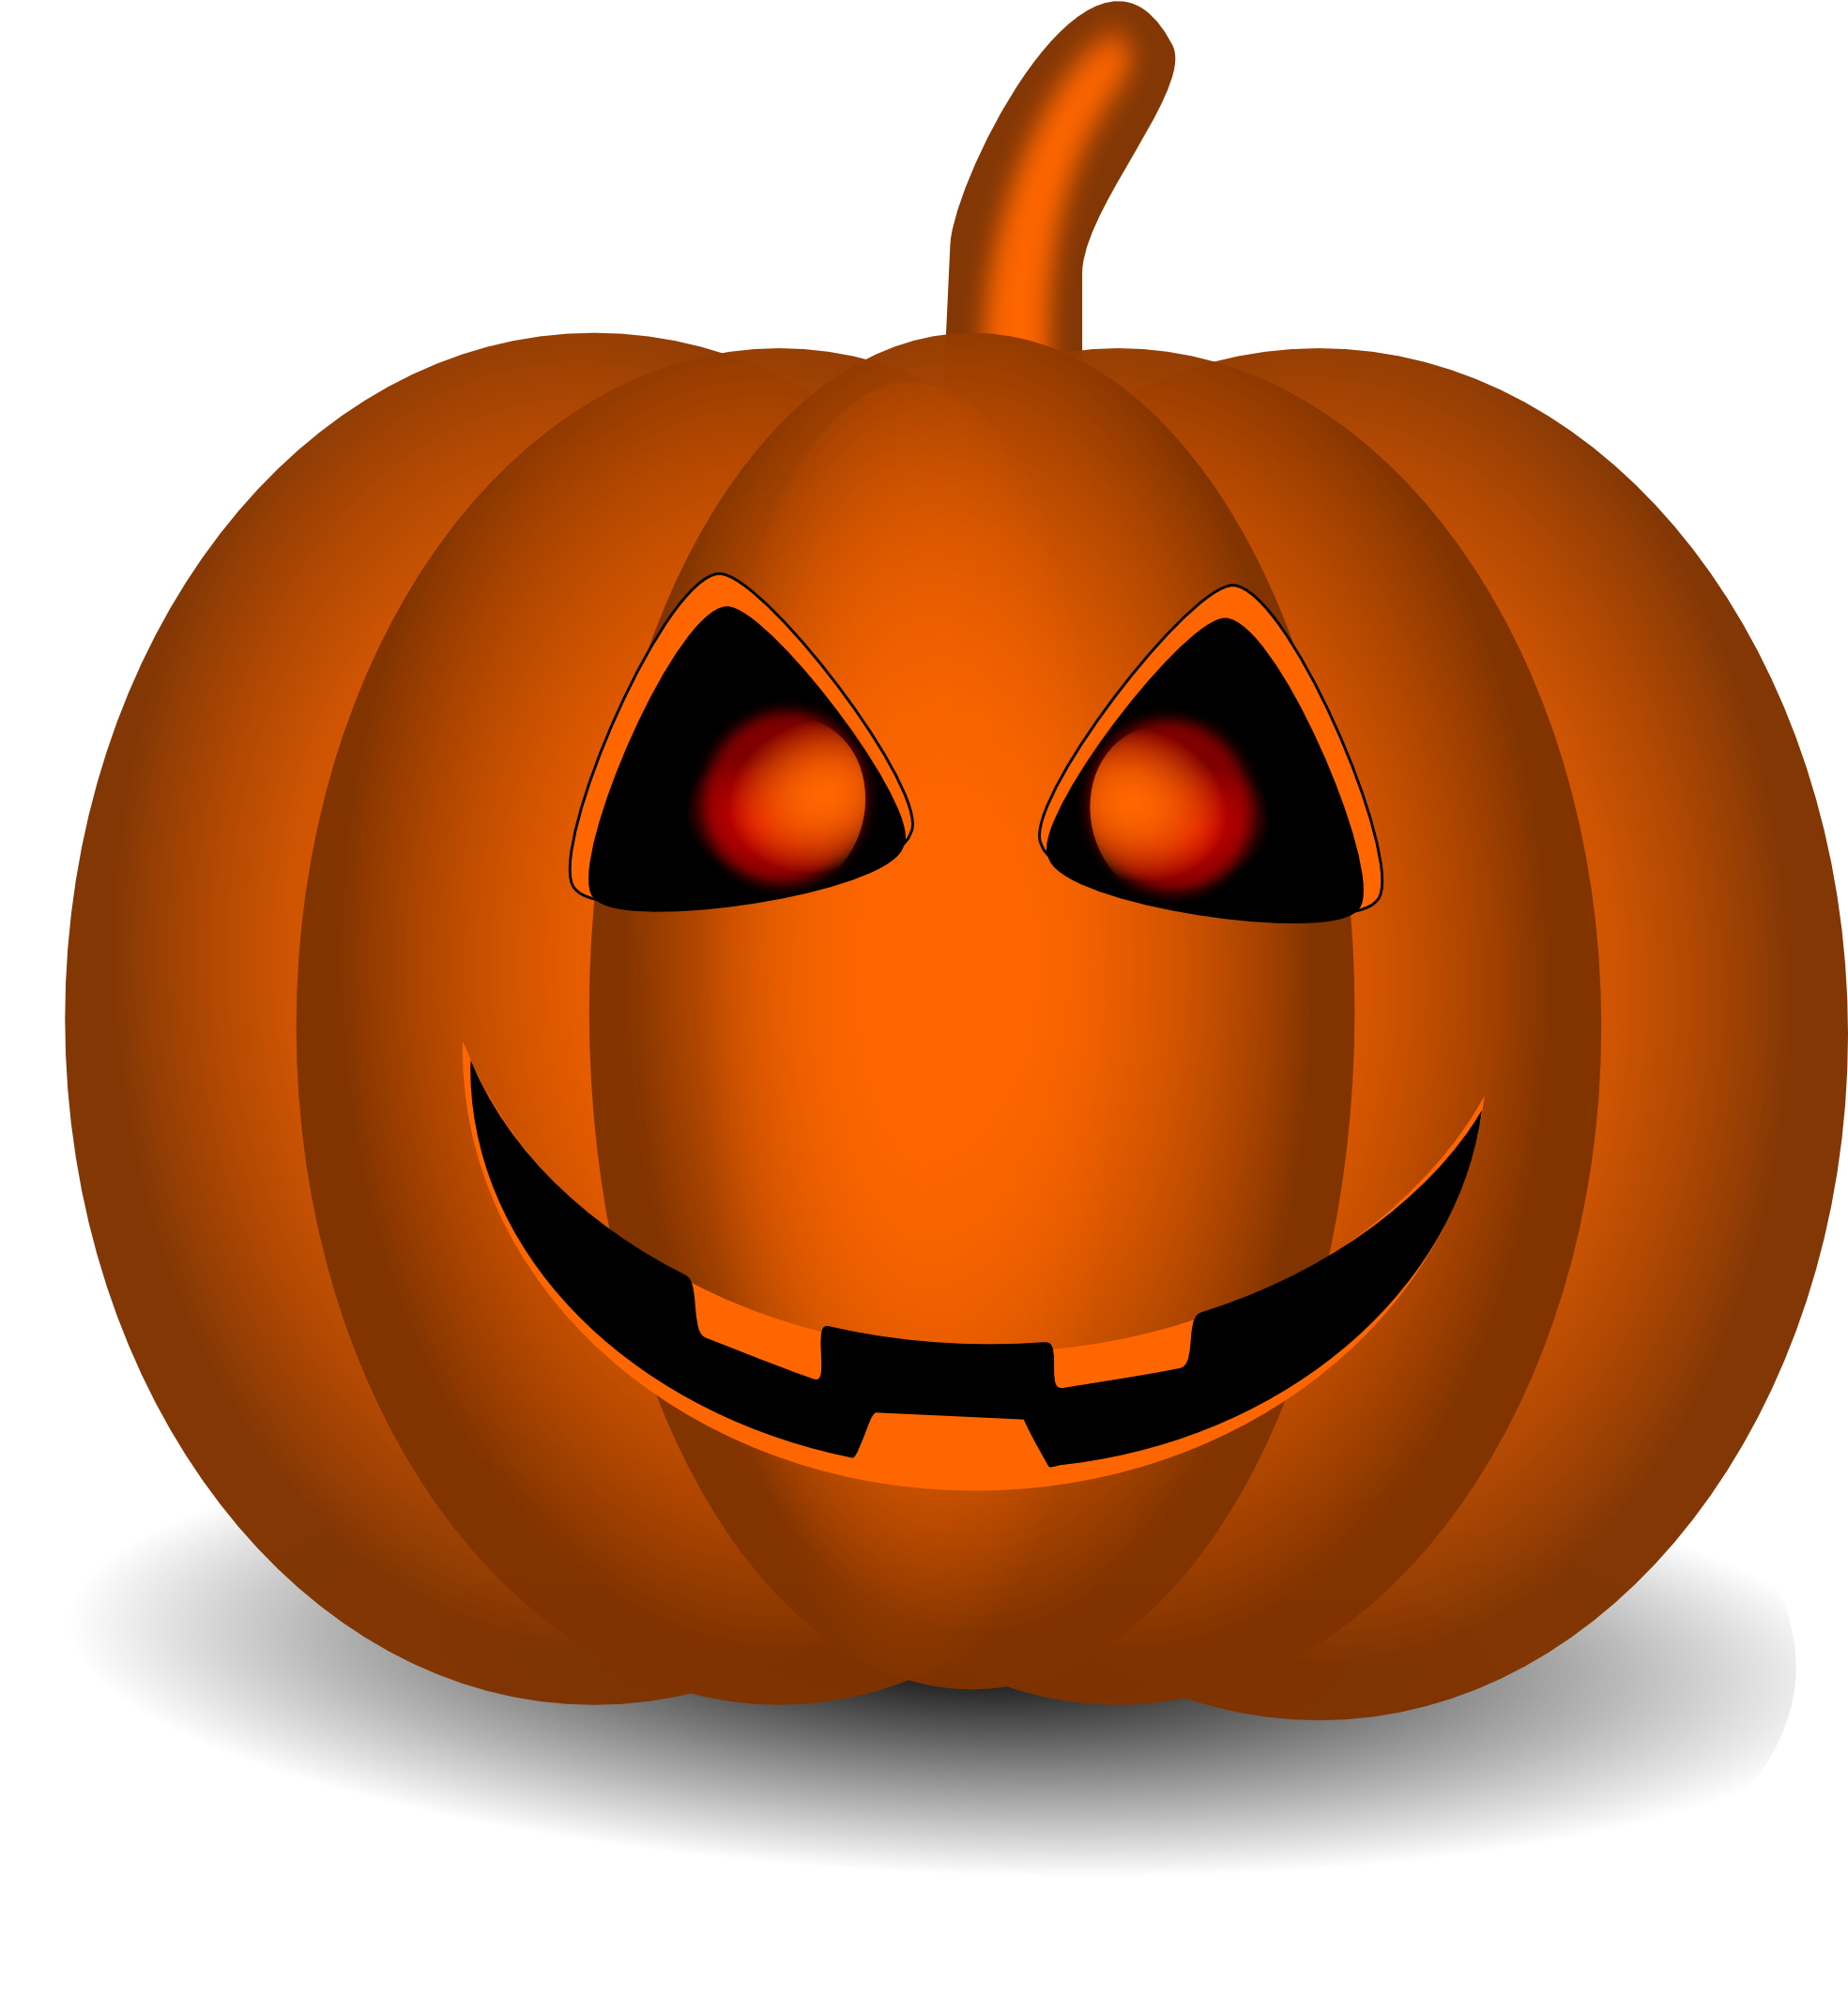 Pumpkin carving clipart free png stock Halloween Transparent PNG Pictures - Free Icons and PNG Backgrounds png stock